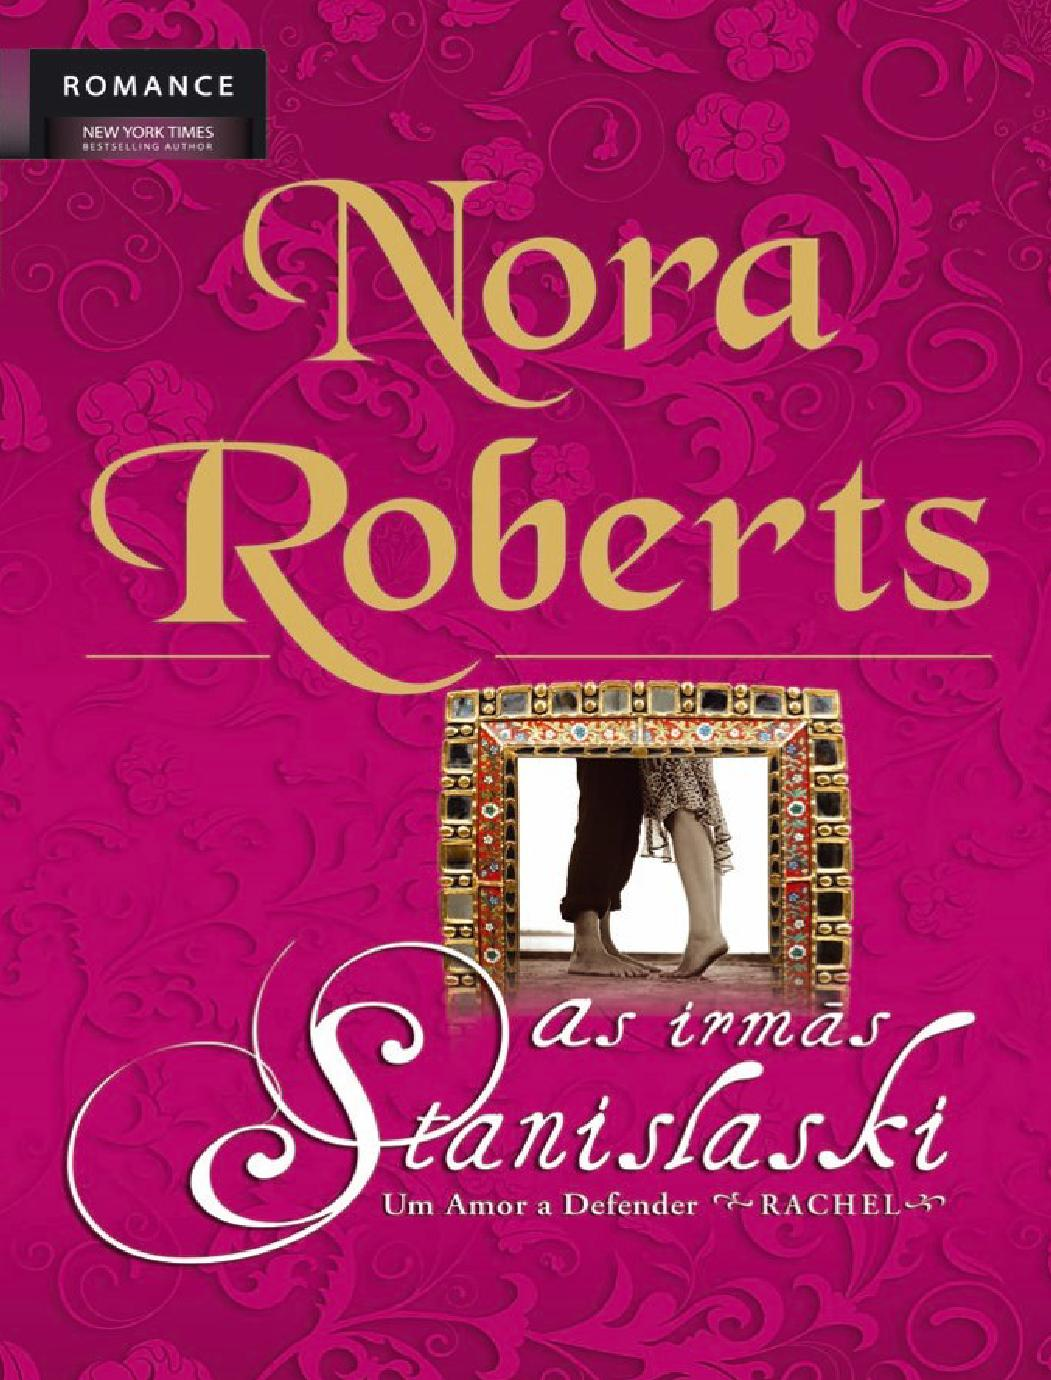 104473d20f9b9 Um amor a defender as irmas s nora roberts by Ayala Bianca Andrade - issuu